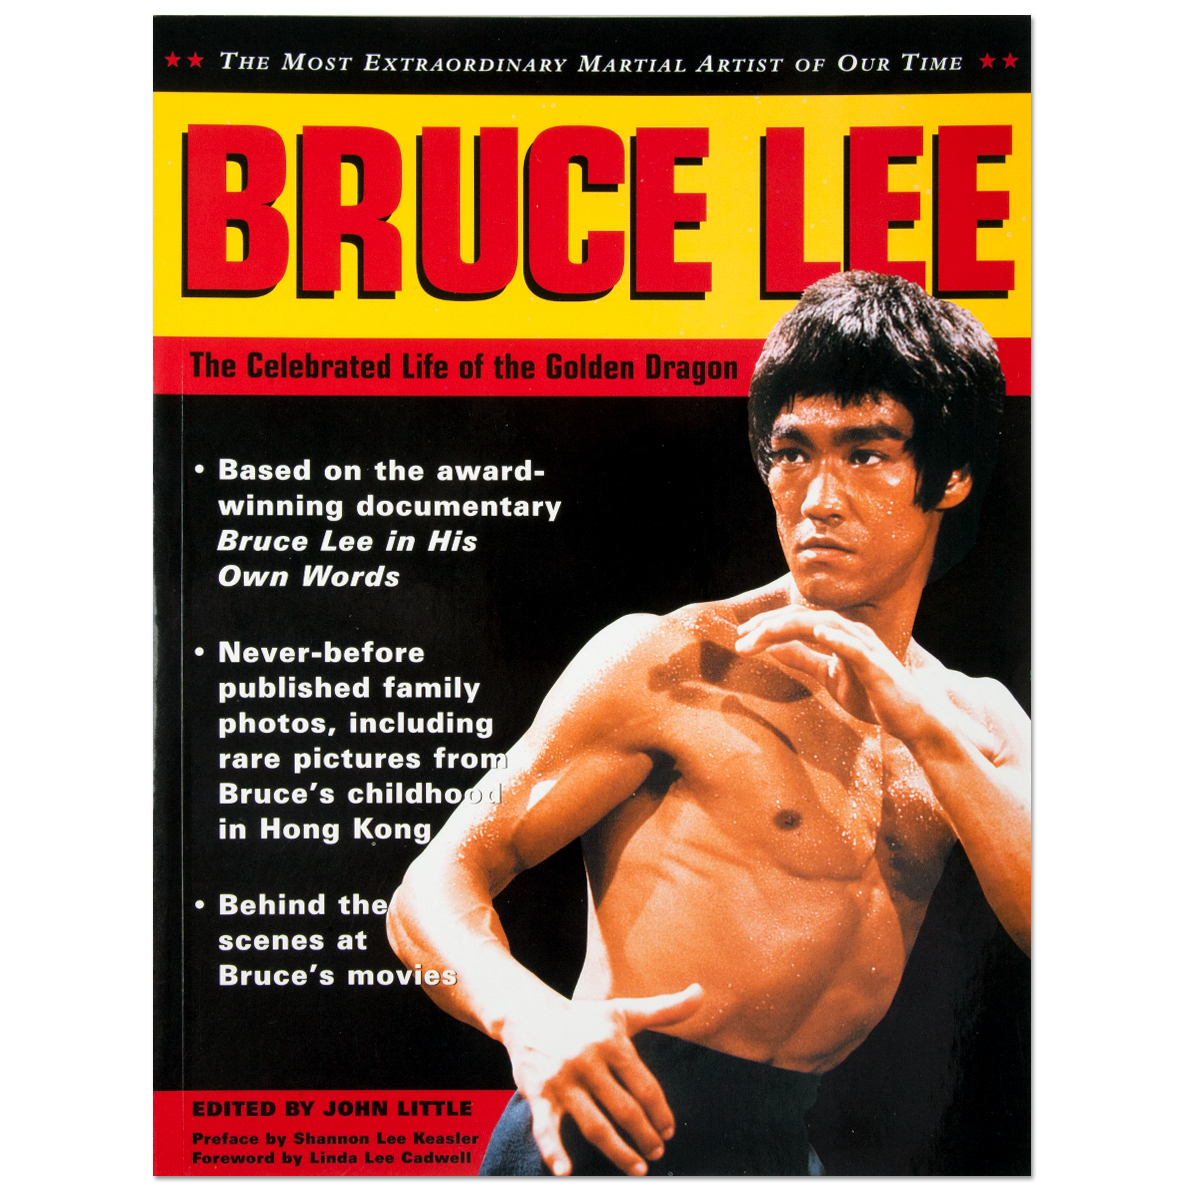 Bruce Lee: The Celebrated Life of the Golden Dragon Book